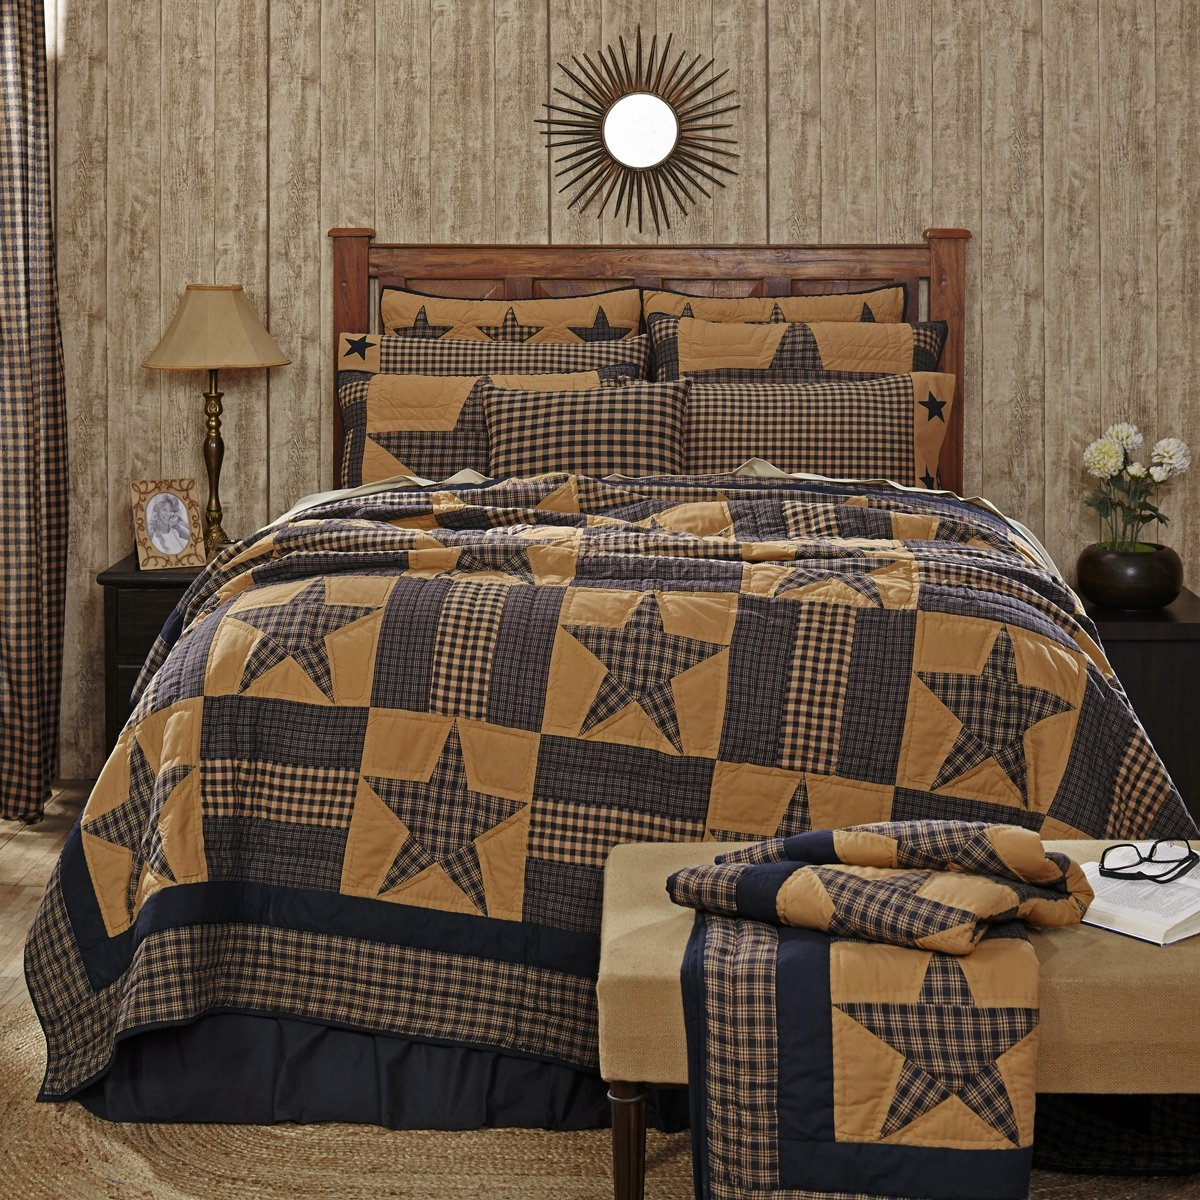 VHC Brands Teton Star Primitive Country Patchwork Queen Quilt 90'' x 90'' by Ashton & Willow, VHC Brands by Ashton & Willow